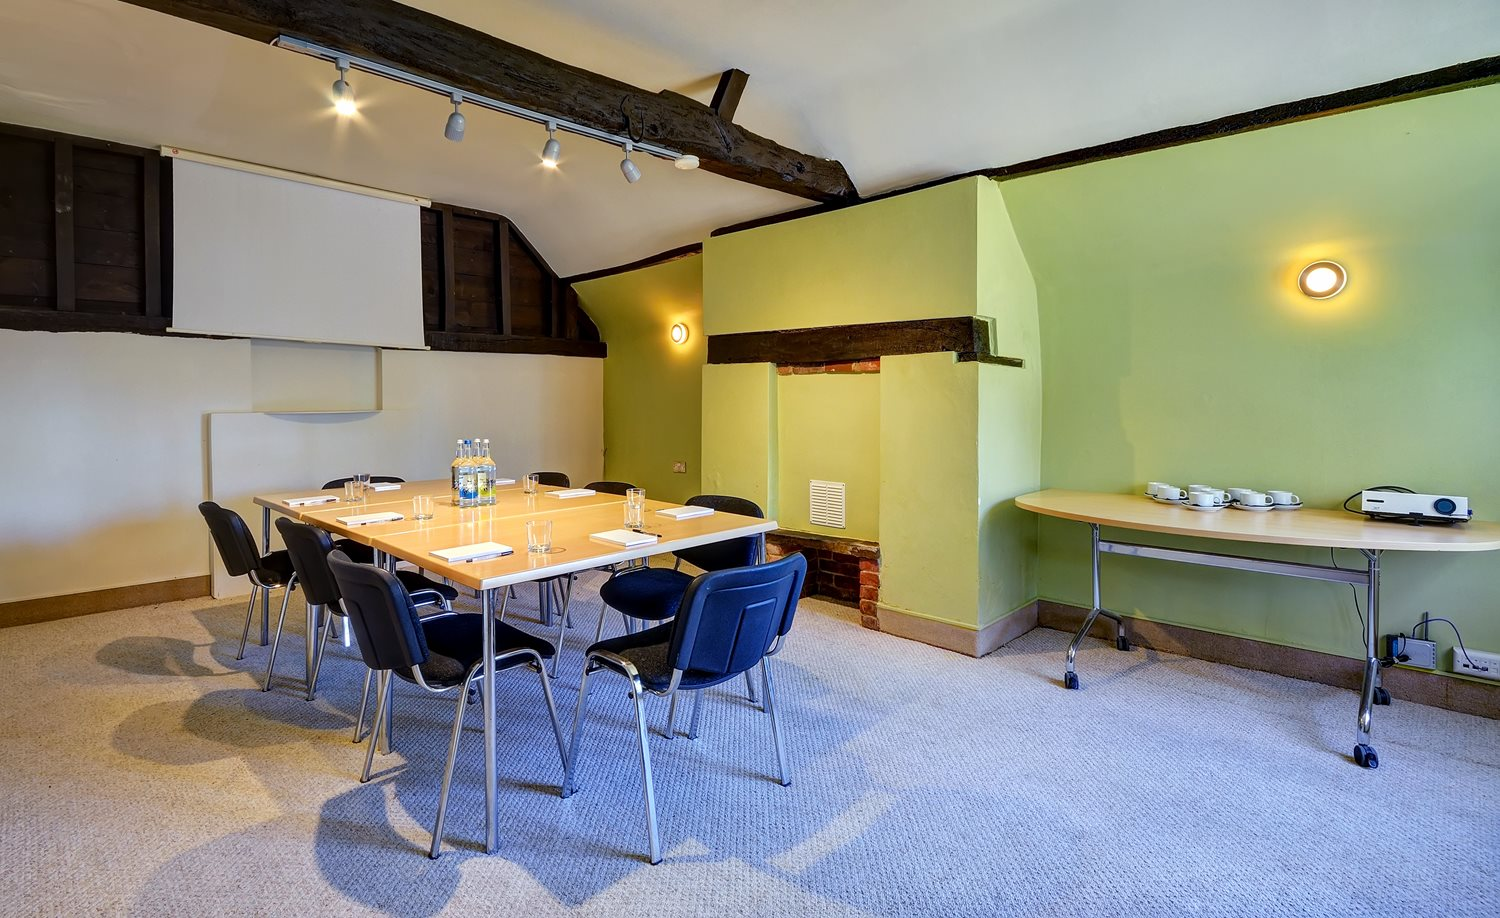 The characterful Cottage Boardroom can seat up to 15